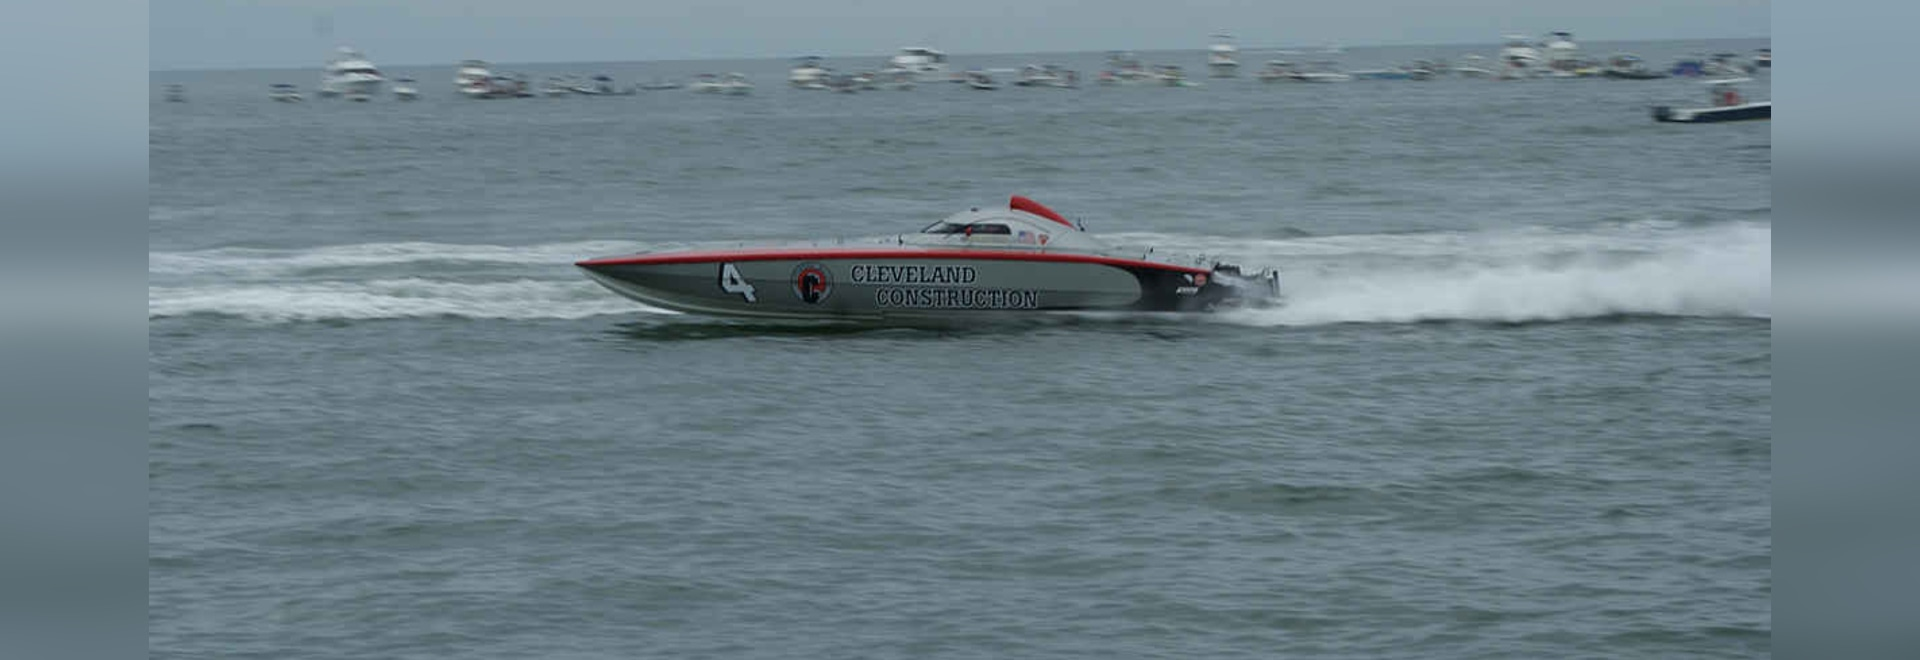 Cleveland Construction was just one of many powerboats vying for a title.